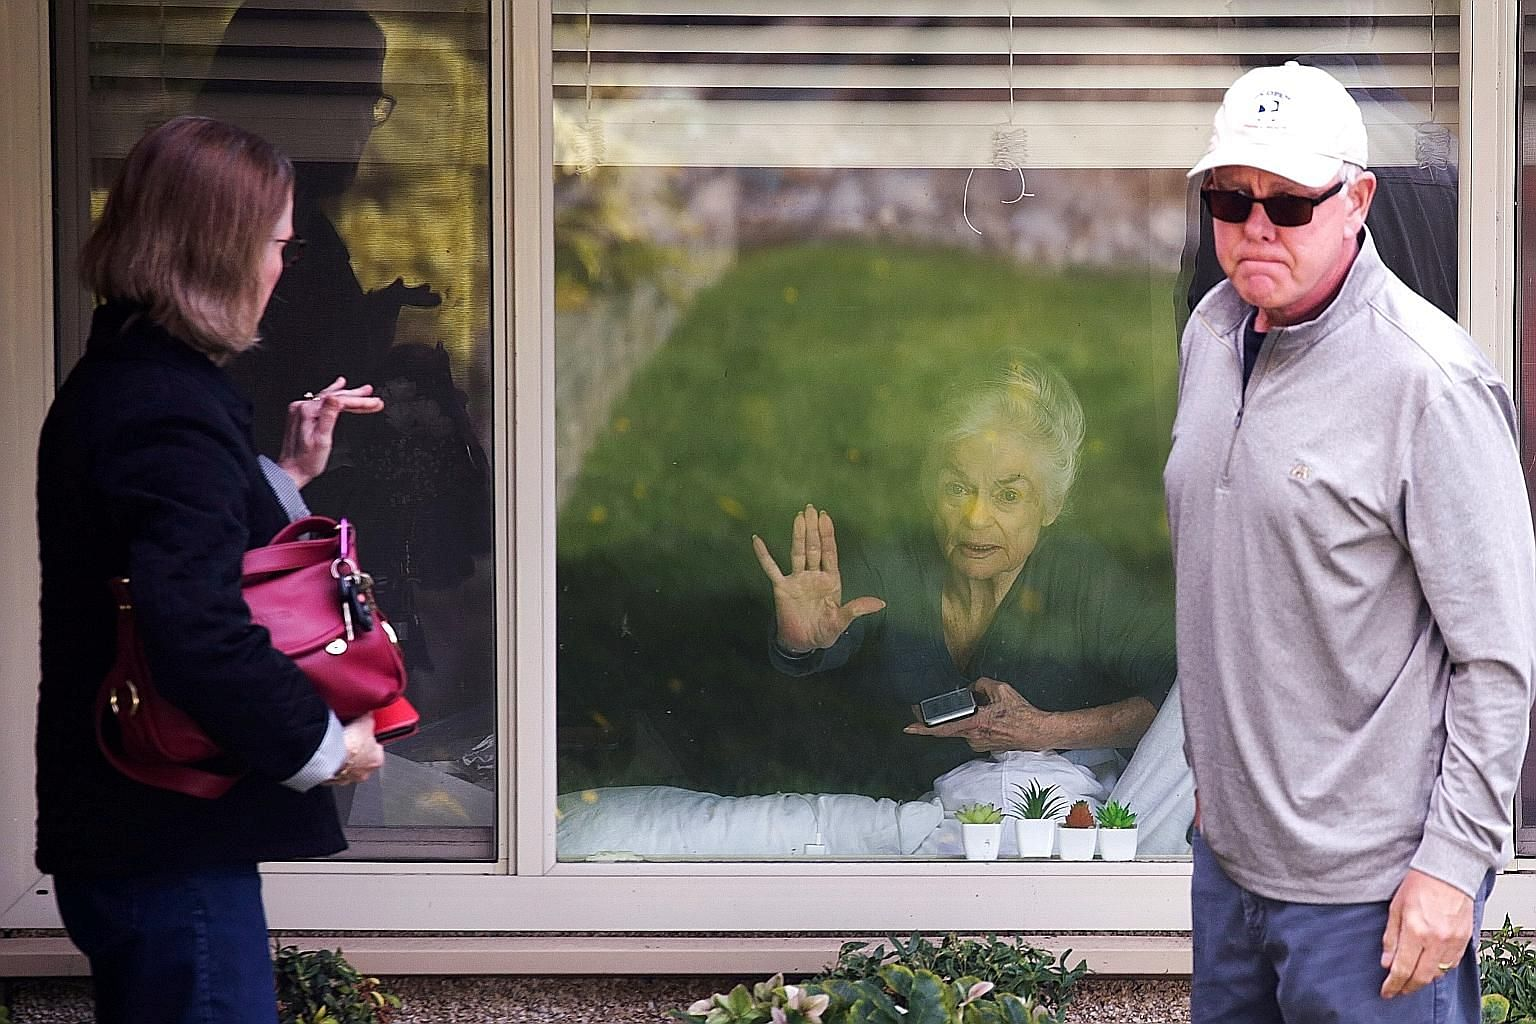 Ms Judie Shape, 81, who tested positive for coronavirus, waving goodbye to her daughter Lori and son-in-law Michael Spencer who visited outside her room at Life Care Centre in Kirkland, Washington. The facility was the epicentre of an outbreak in the